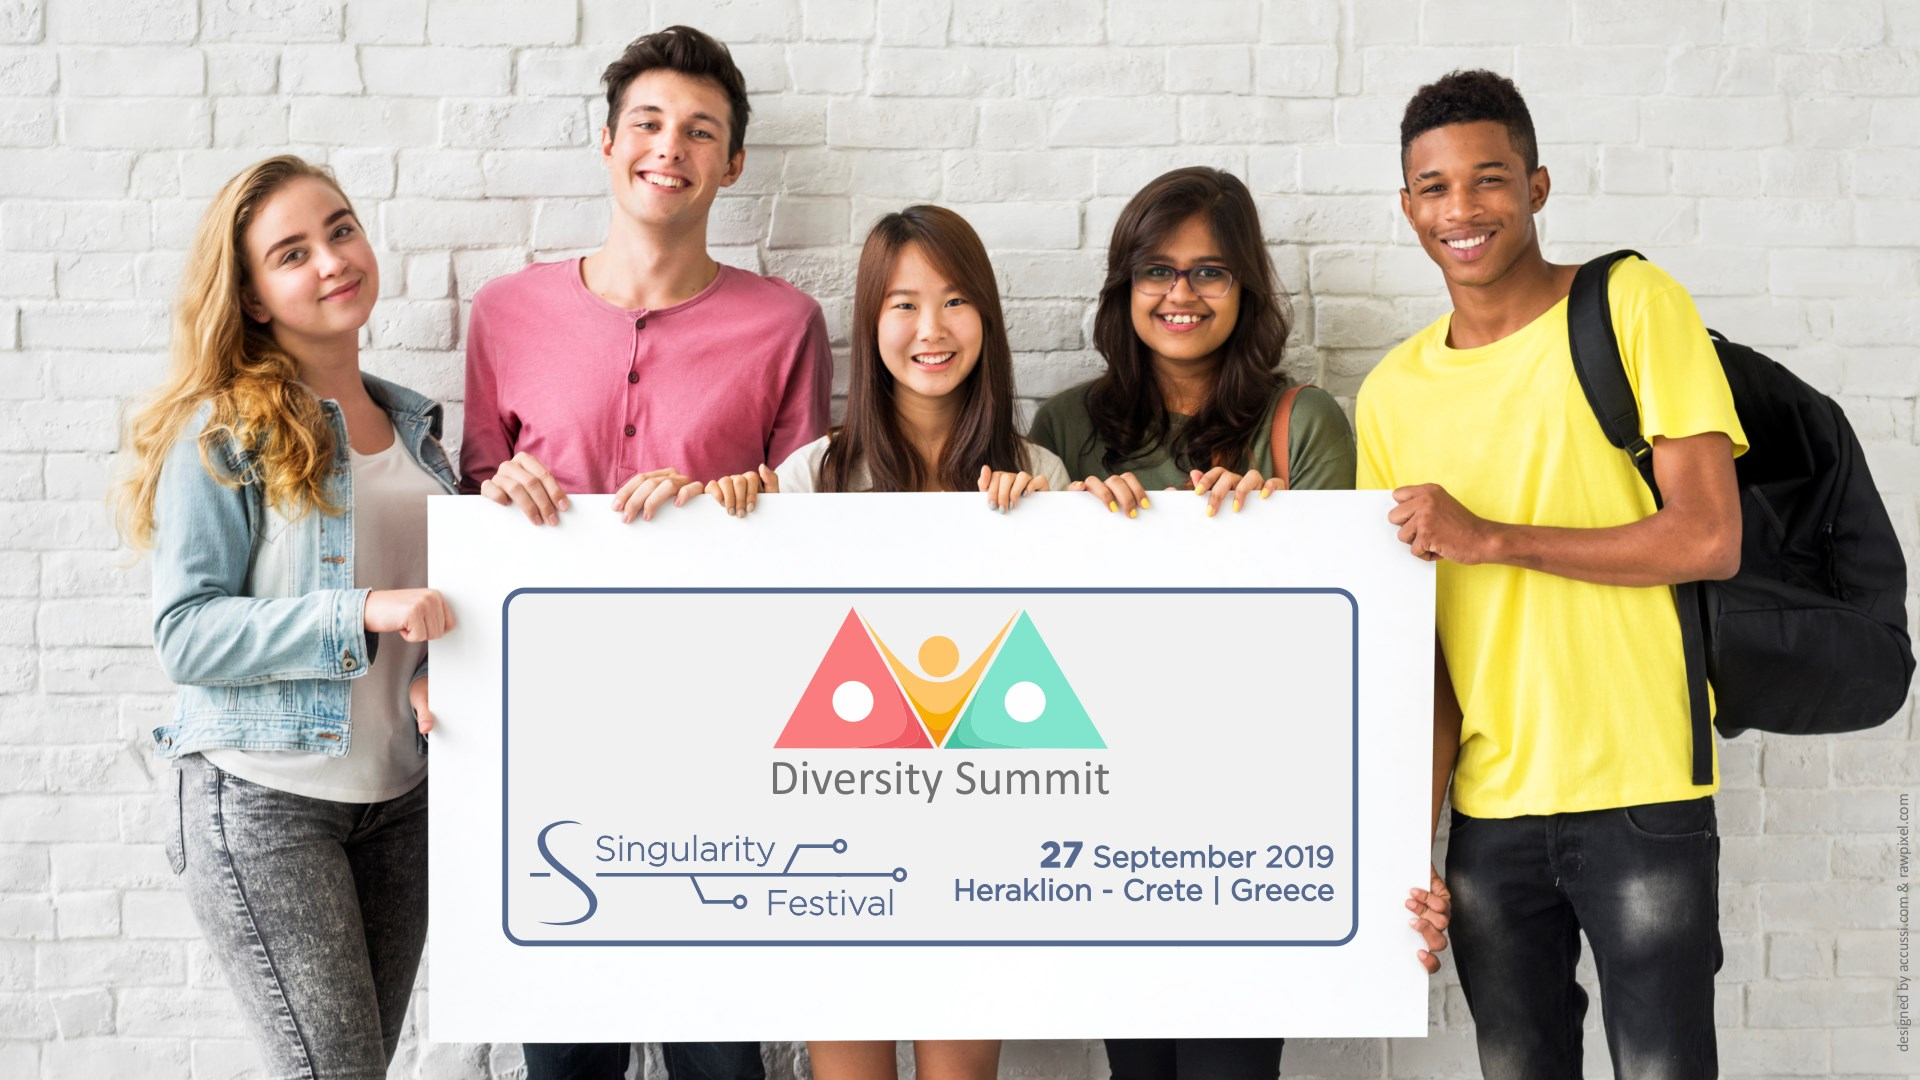 Singularity Festival Week (SFW19) – Diversity Summit – Heraklion, Crete